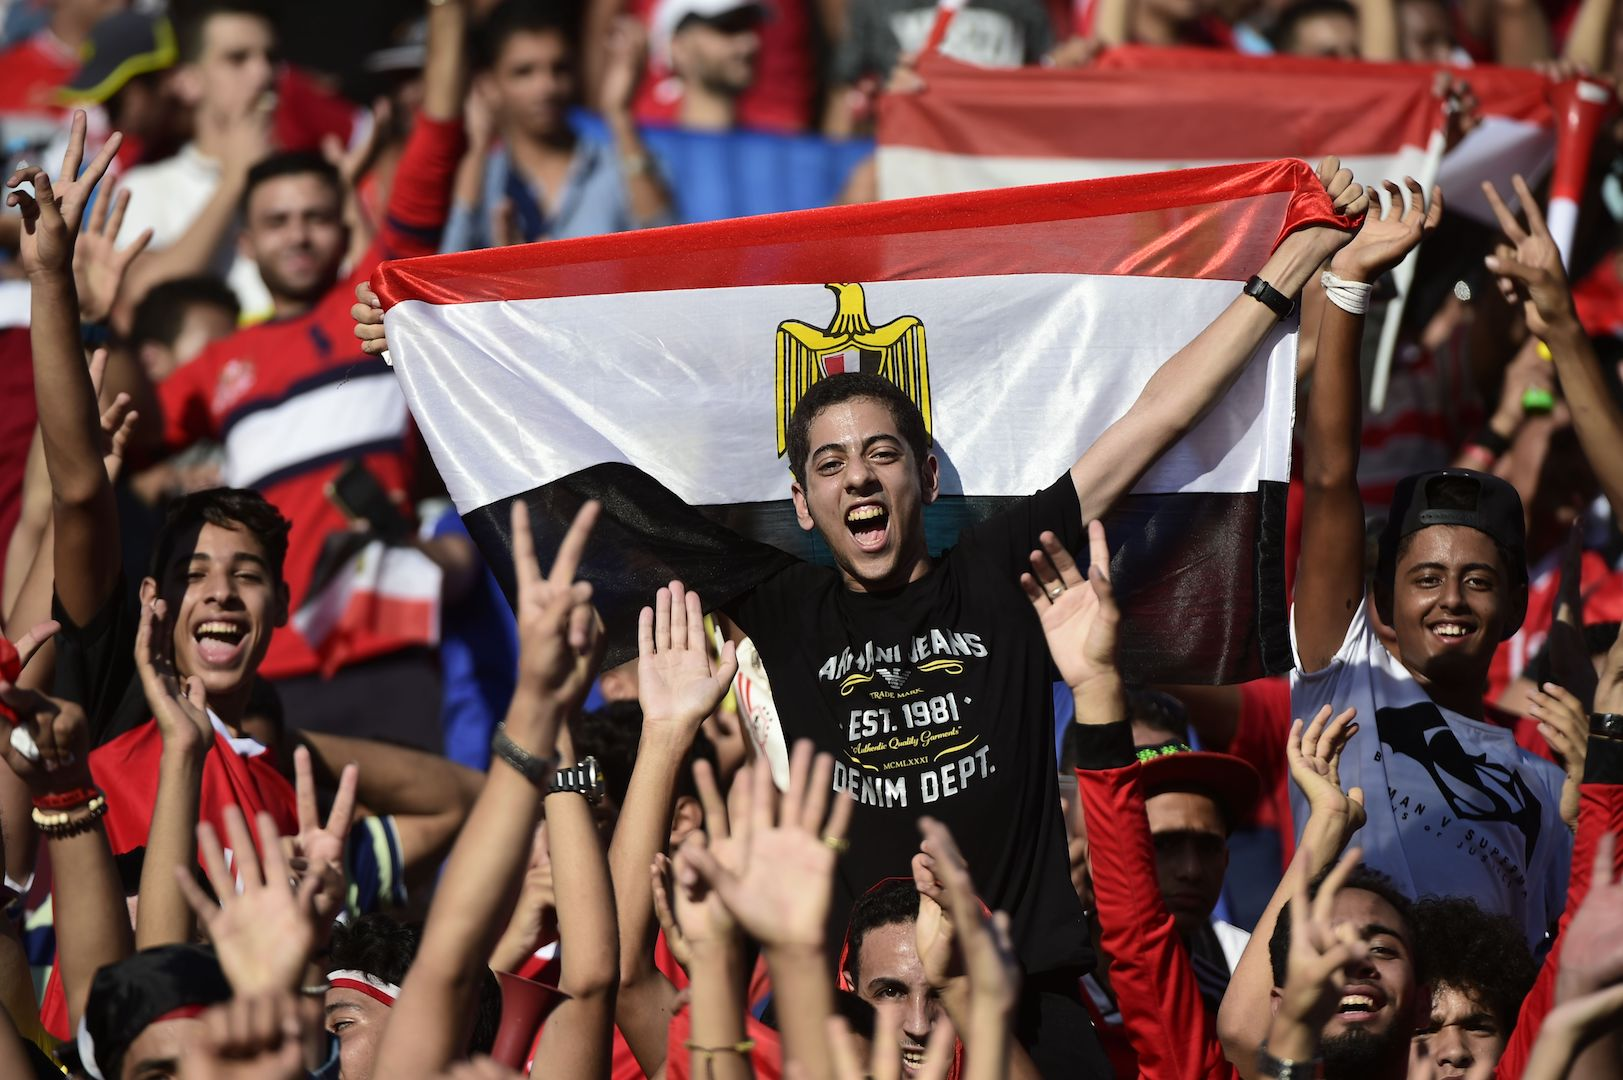 Egyptian fans cheer for their national team before the FIFA World Cup 2018 qualification football match between Egypt and Uganda at the Borg al-Arab Stadium near Alexandria on September 5, 2017. / AFP PHOTO / KHALED DESOUKI (Photo credit should read KHALED DESOUKI/AFP/Getty Images)